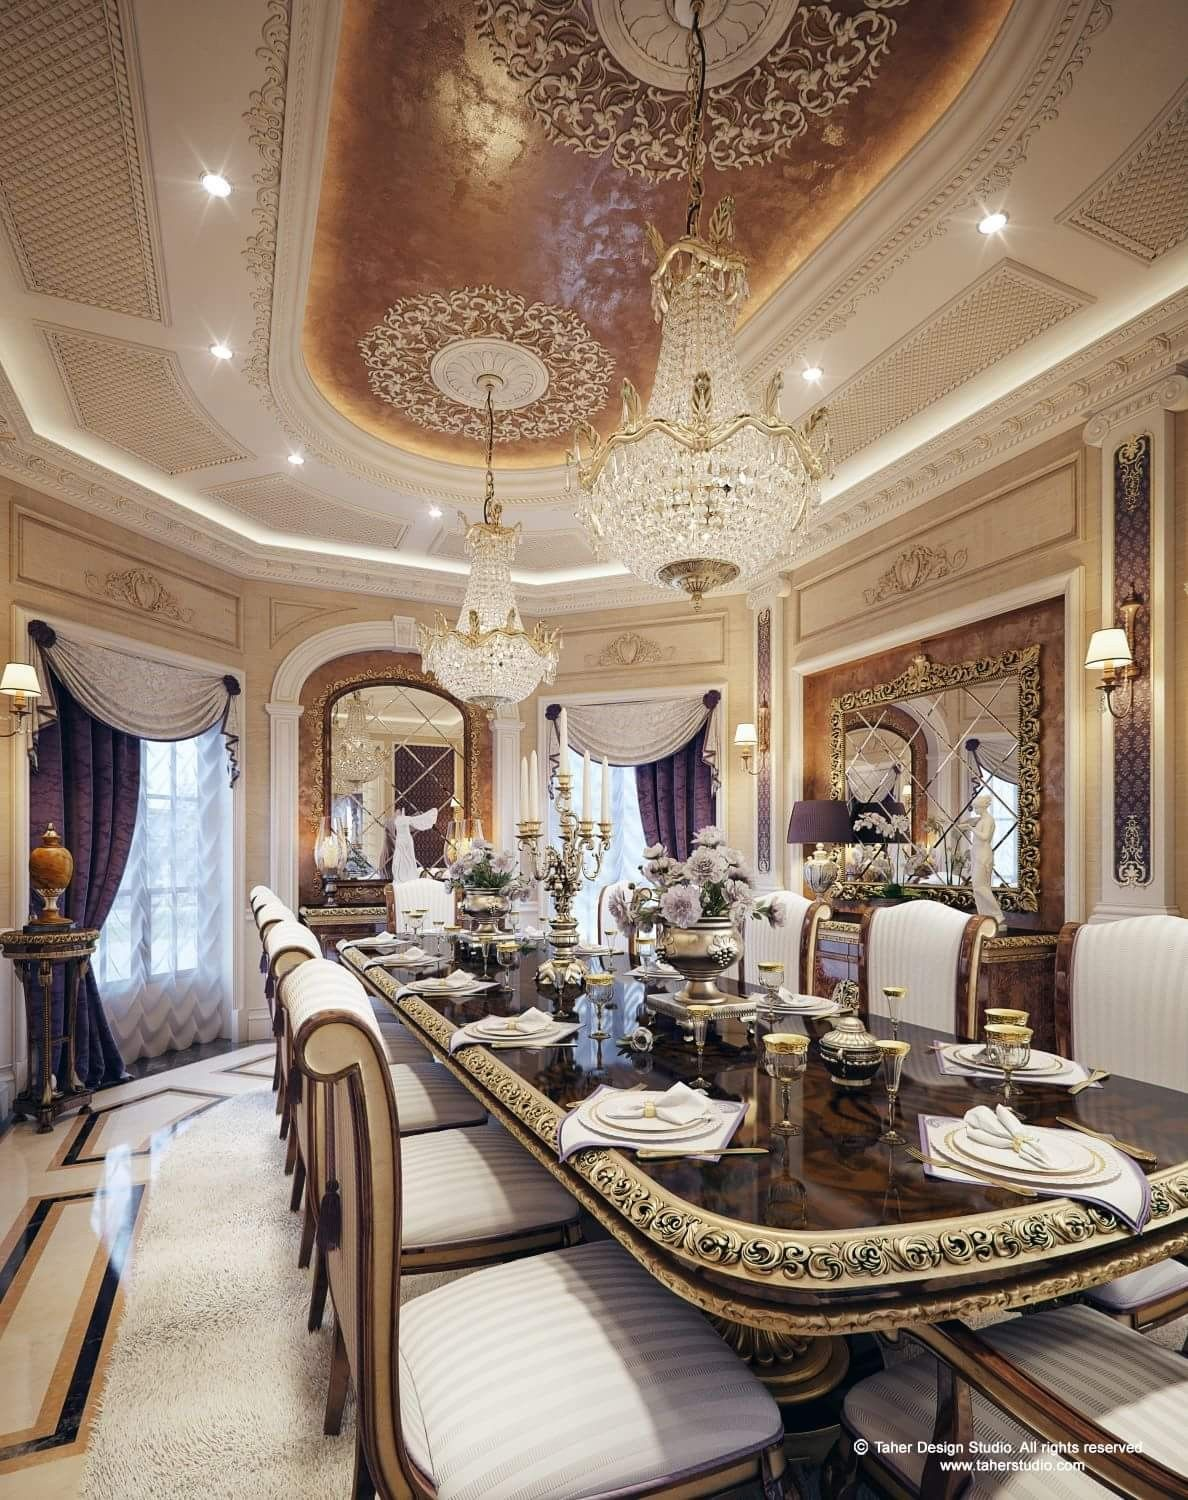 Luxury Dining Room Furniture: Mansion Interior, Luxury